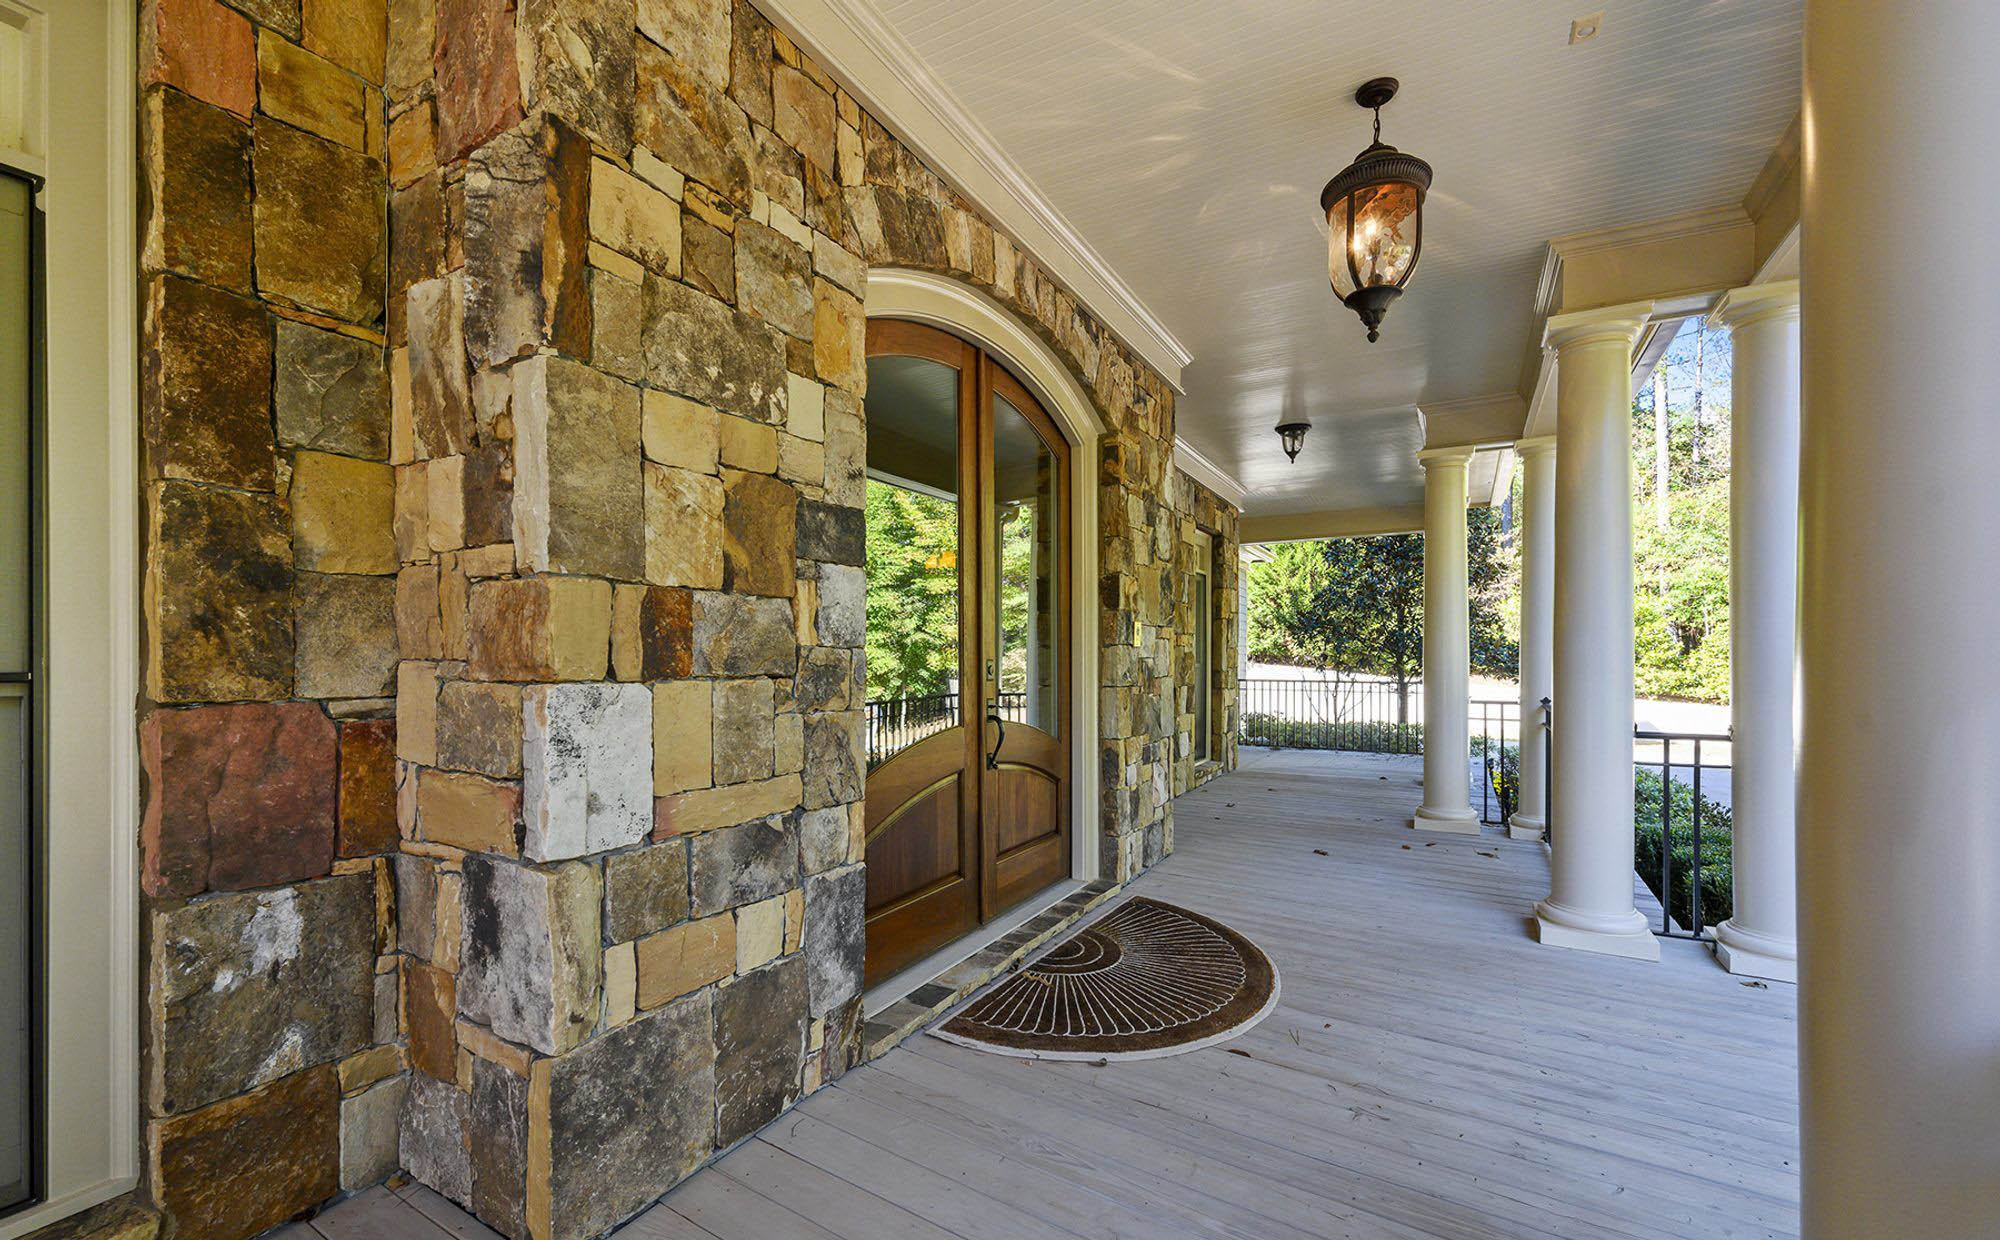 beautiful front porch design, earthy, natural color schene, brown & tan stone siding, wood front door, wood decking, columns. front porch design.